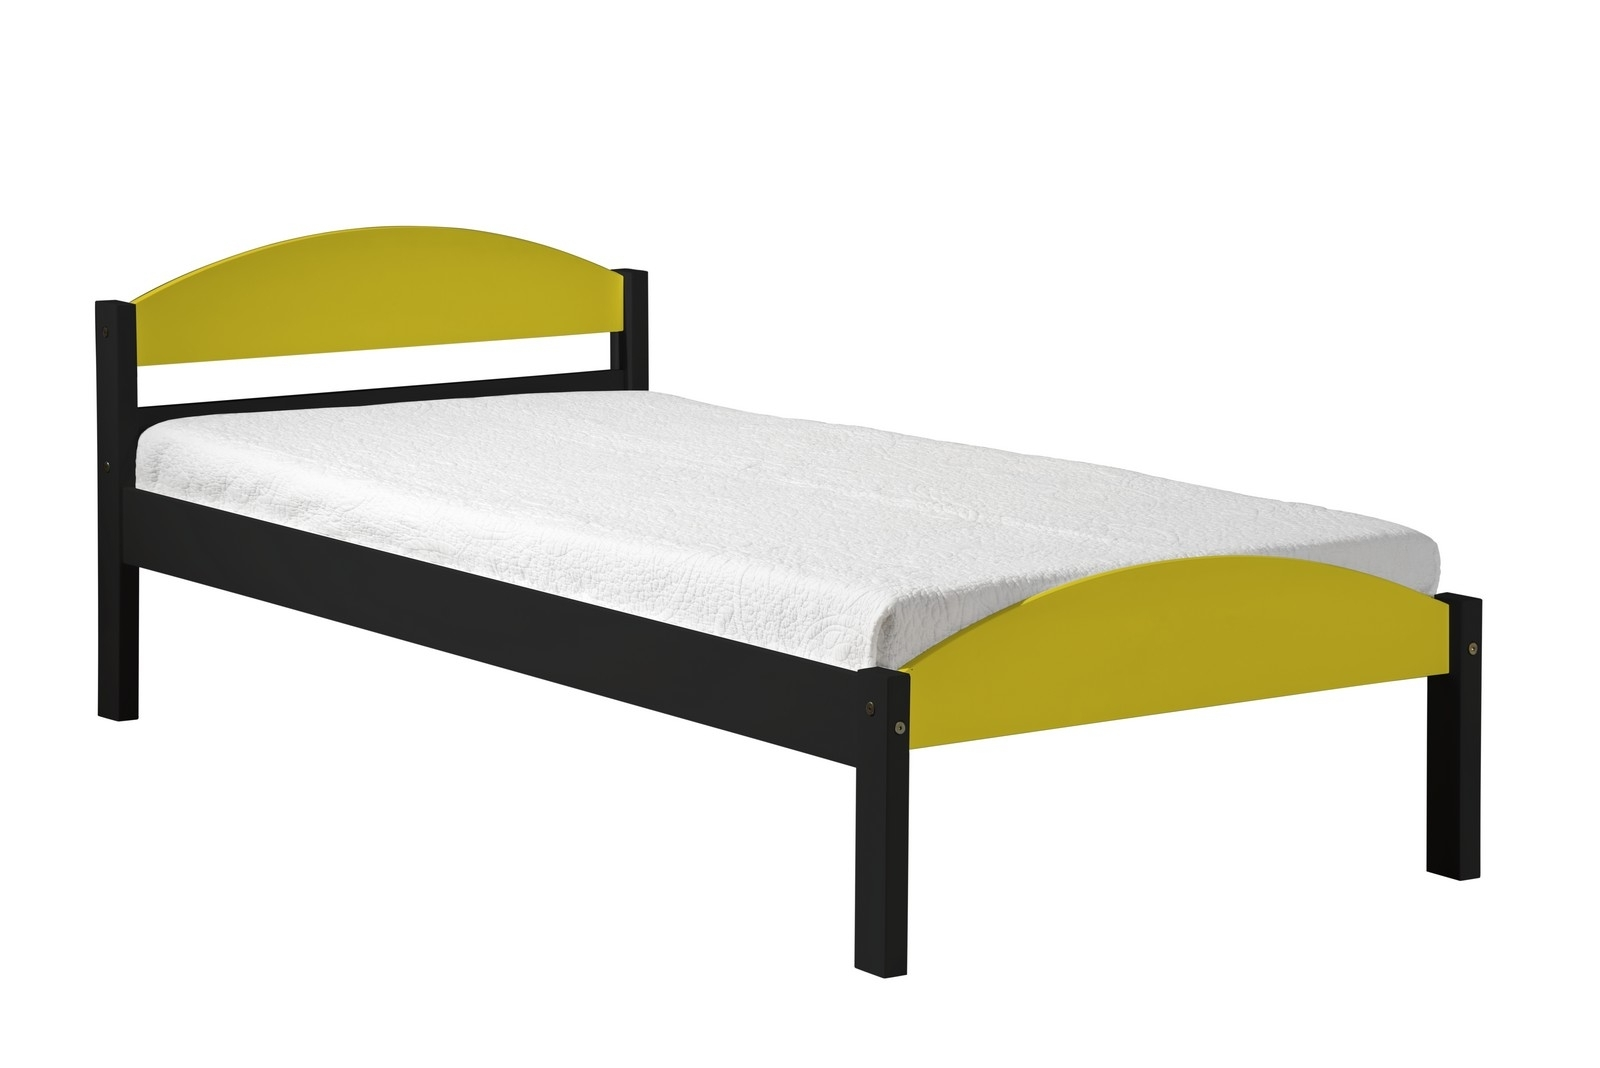 lit pin massif jaune et graphite maximus 90x190 cm. Black Bedroom Furniture Sets. Home Design Ideas